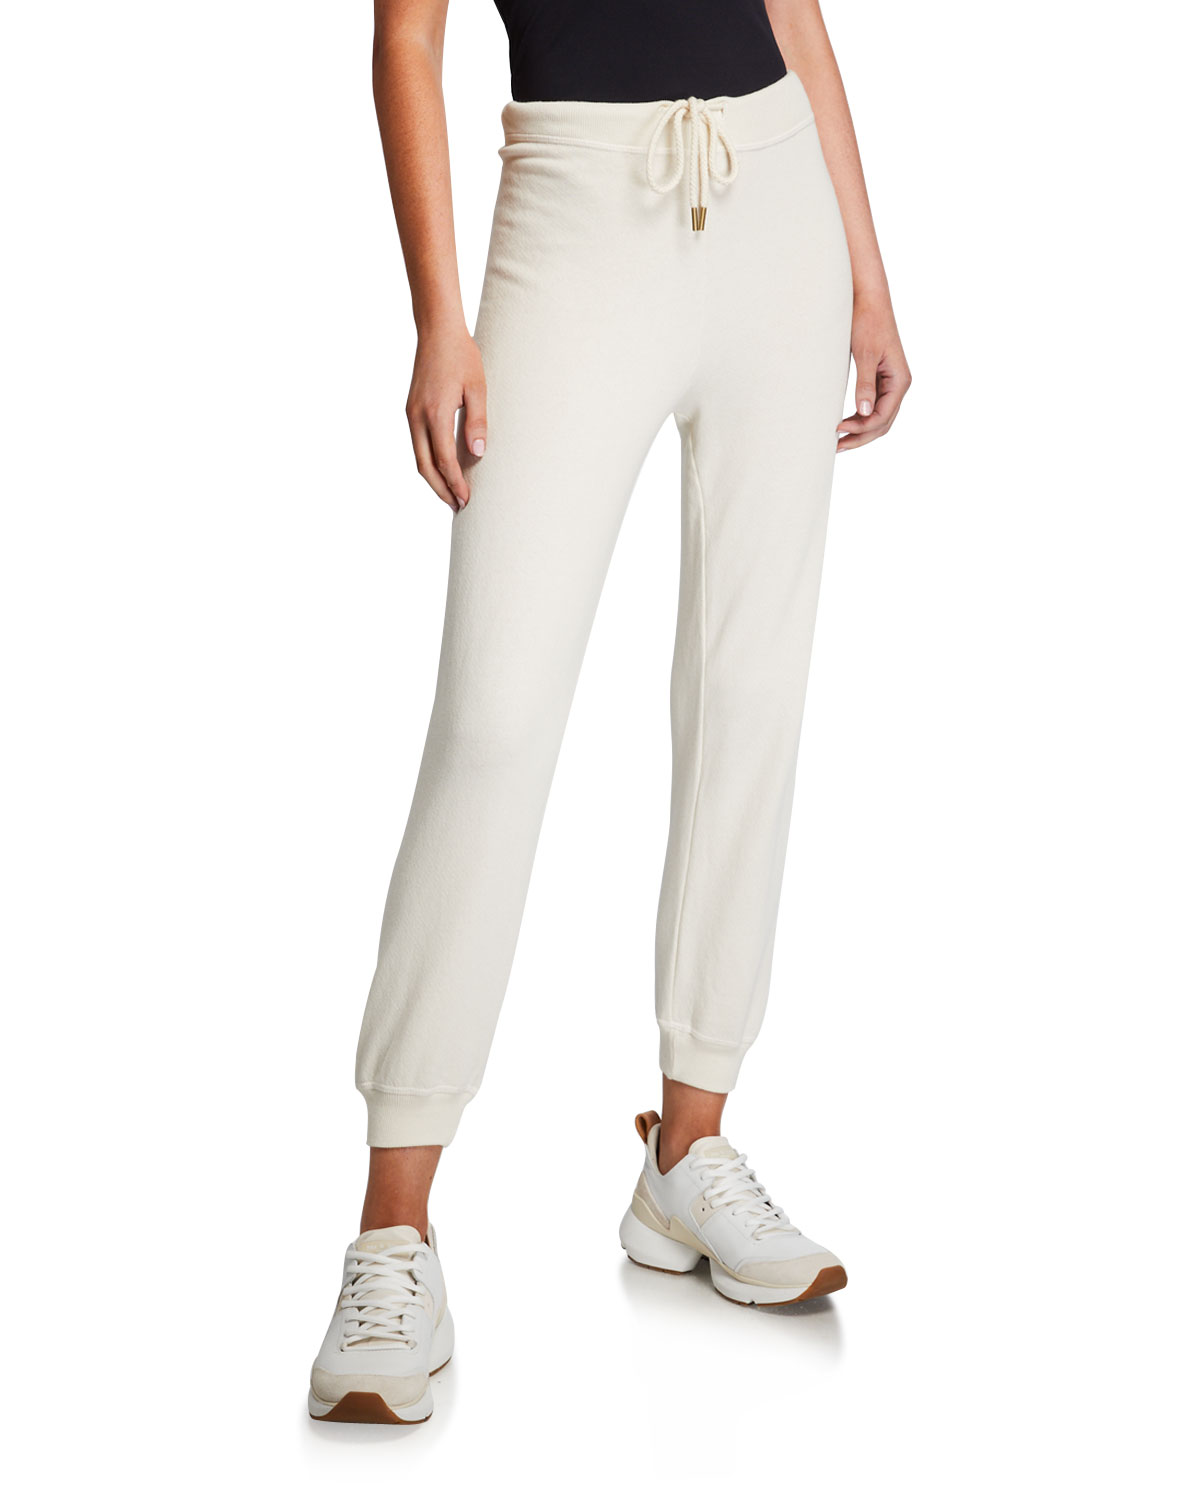 The Great Pants THE CROPPED SWEATPANTS